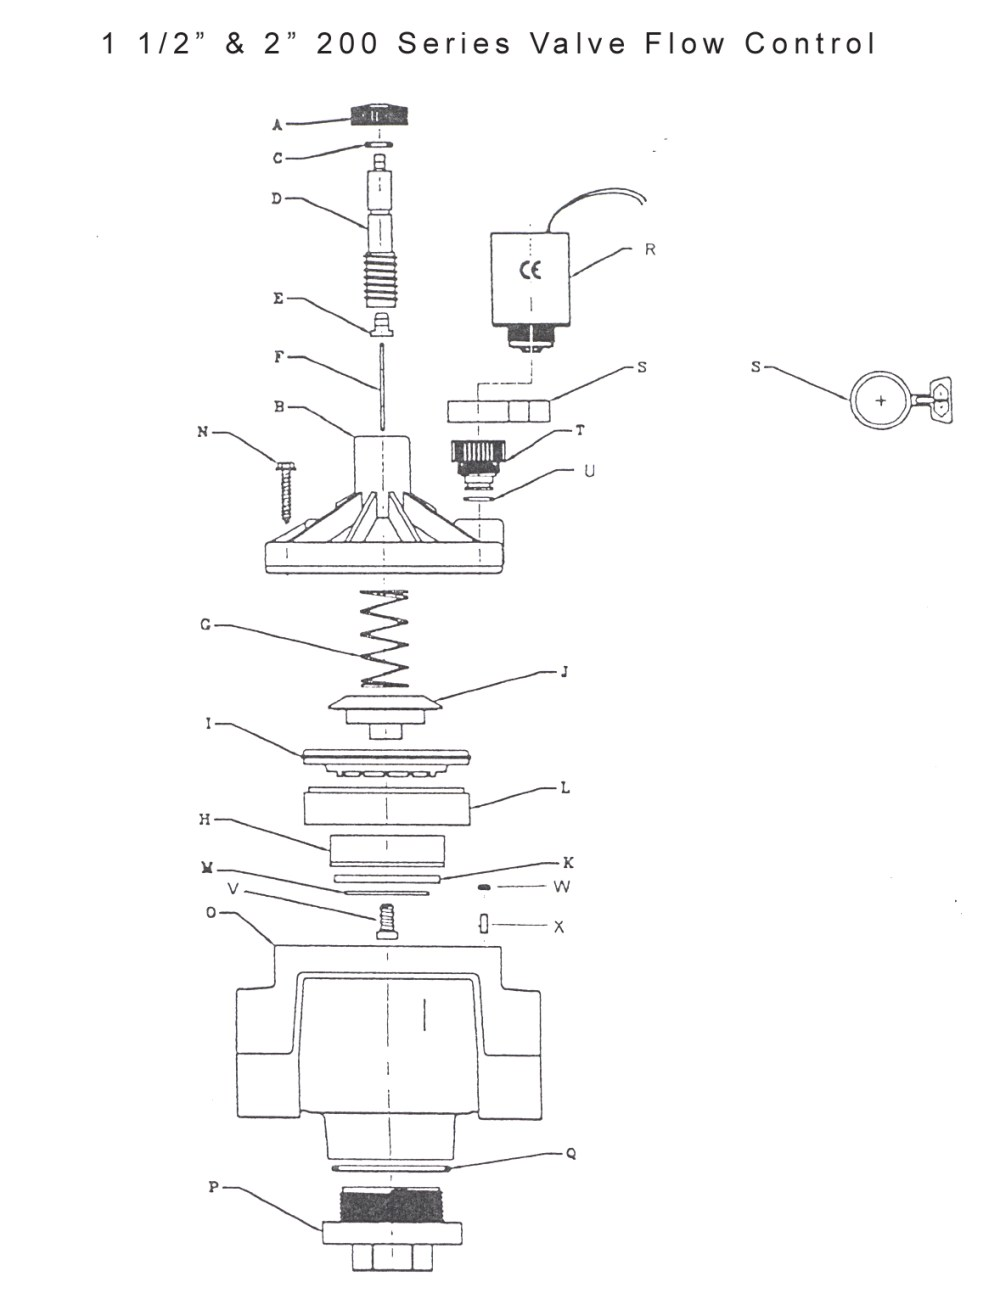 medium resolution of valve assembly drawings 100 series 1 inch flow control